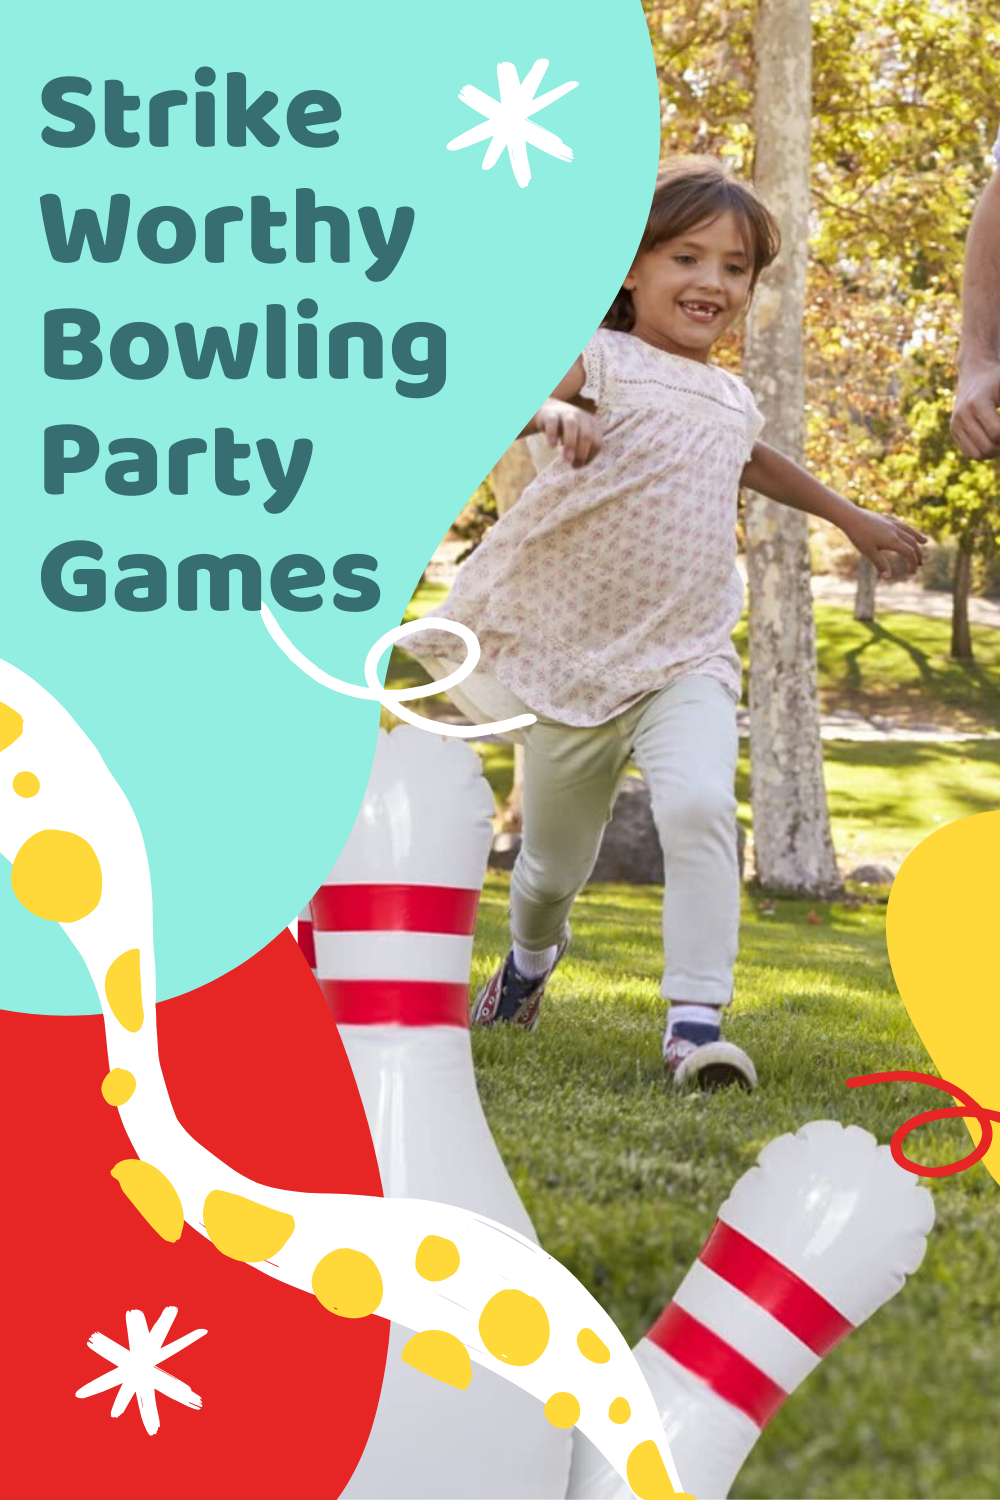 Bowing Party Games